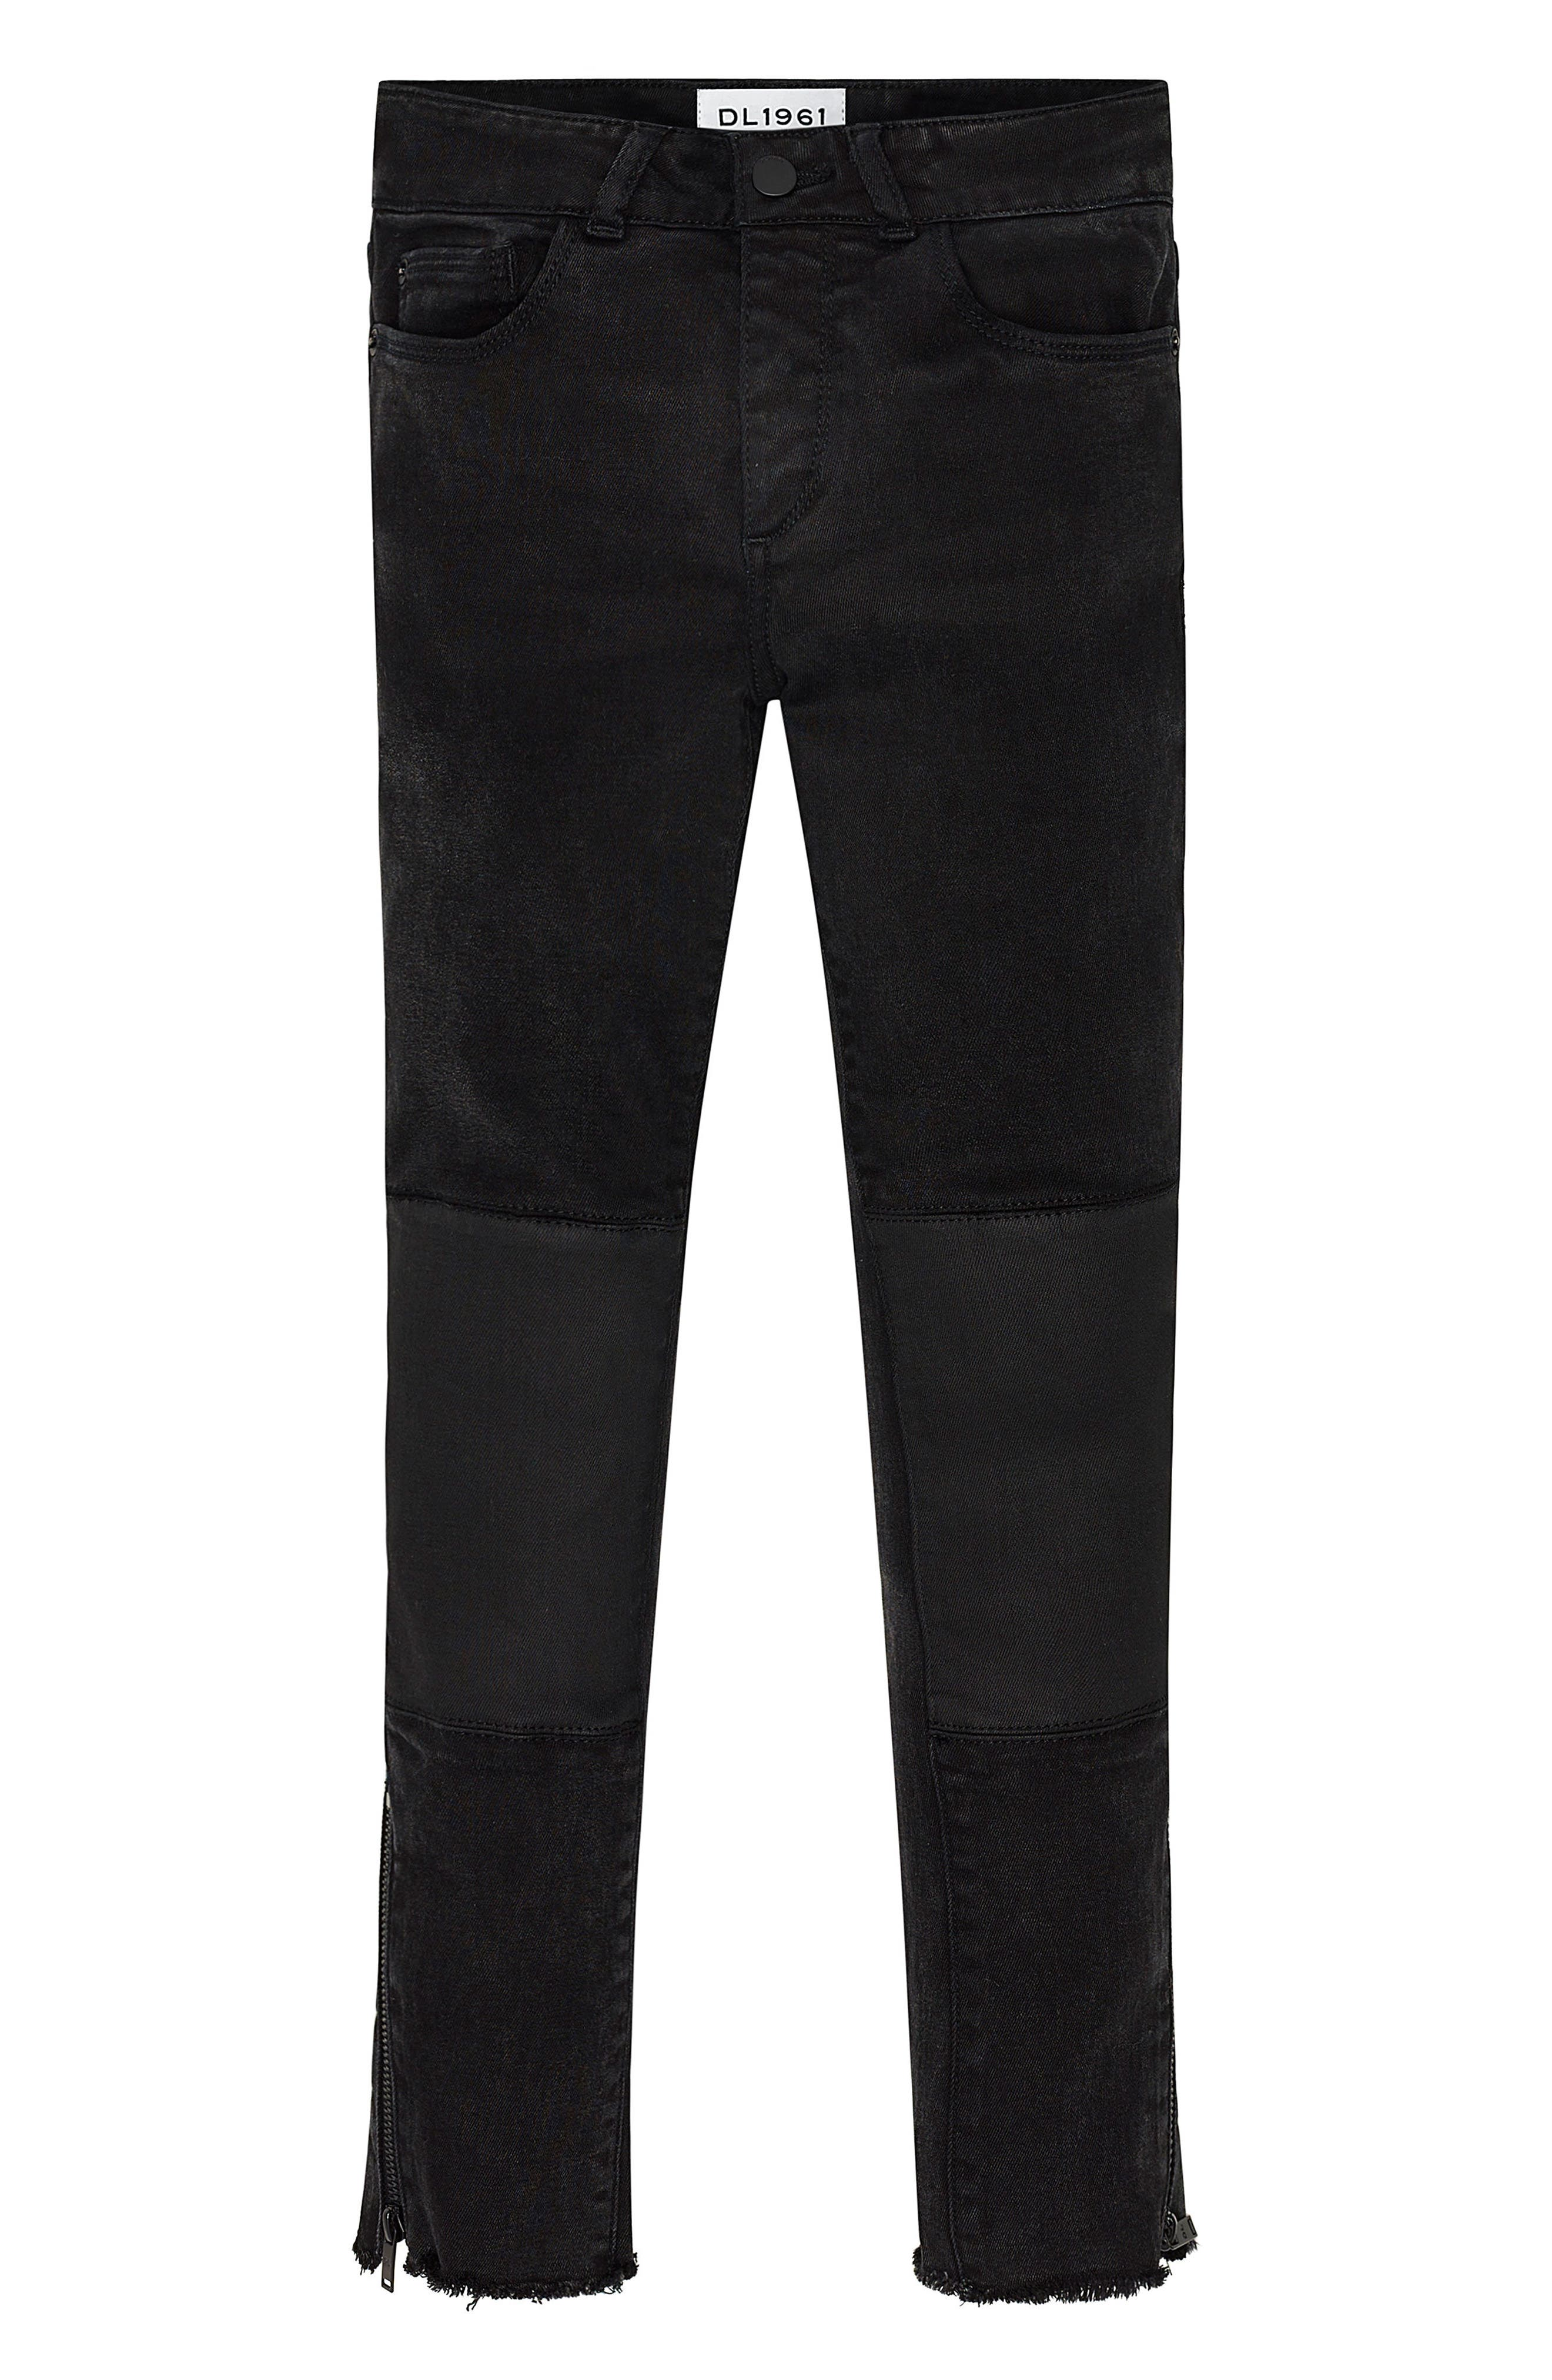 DL1961 Chloe Moto Skinny Jeans (Big Girls)